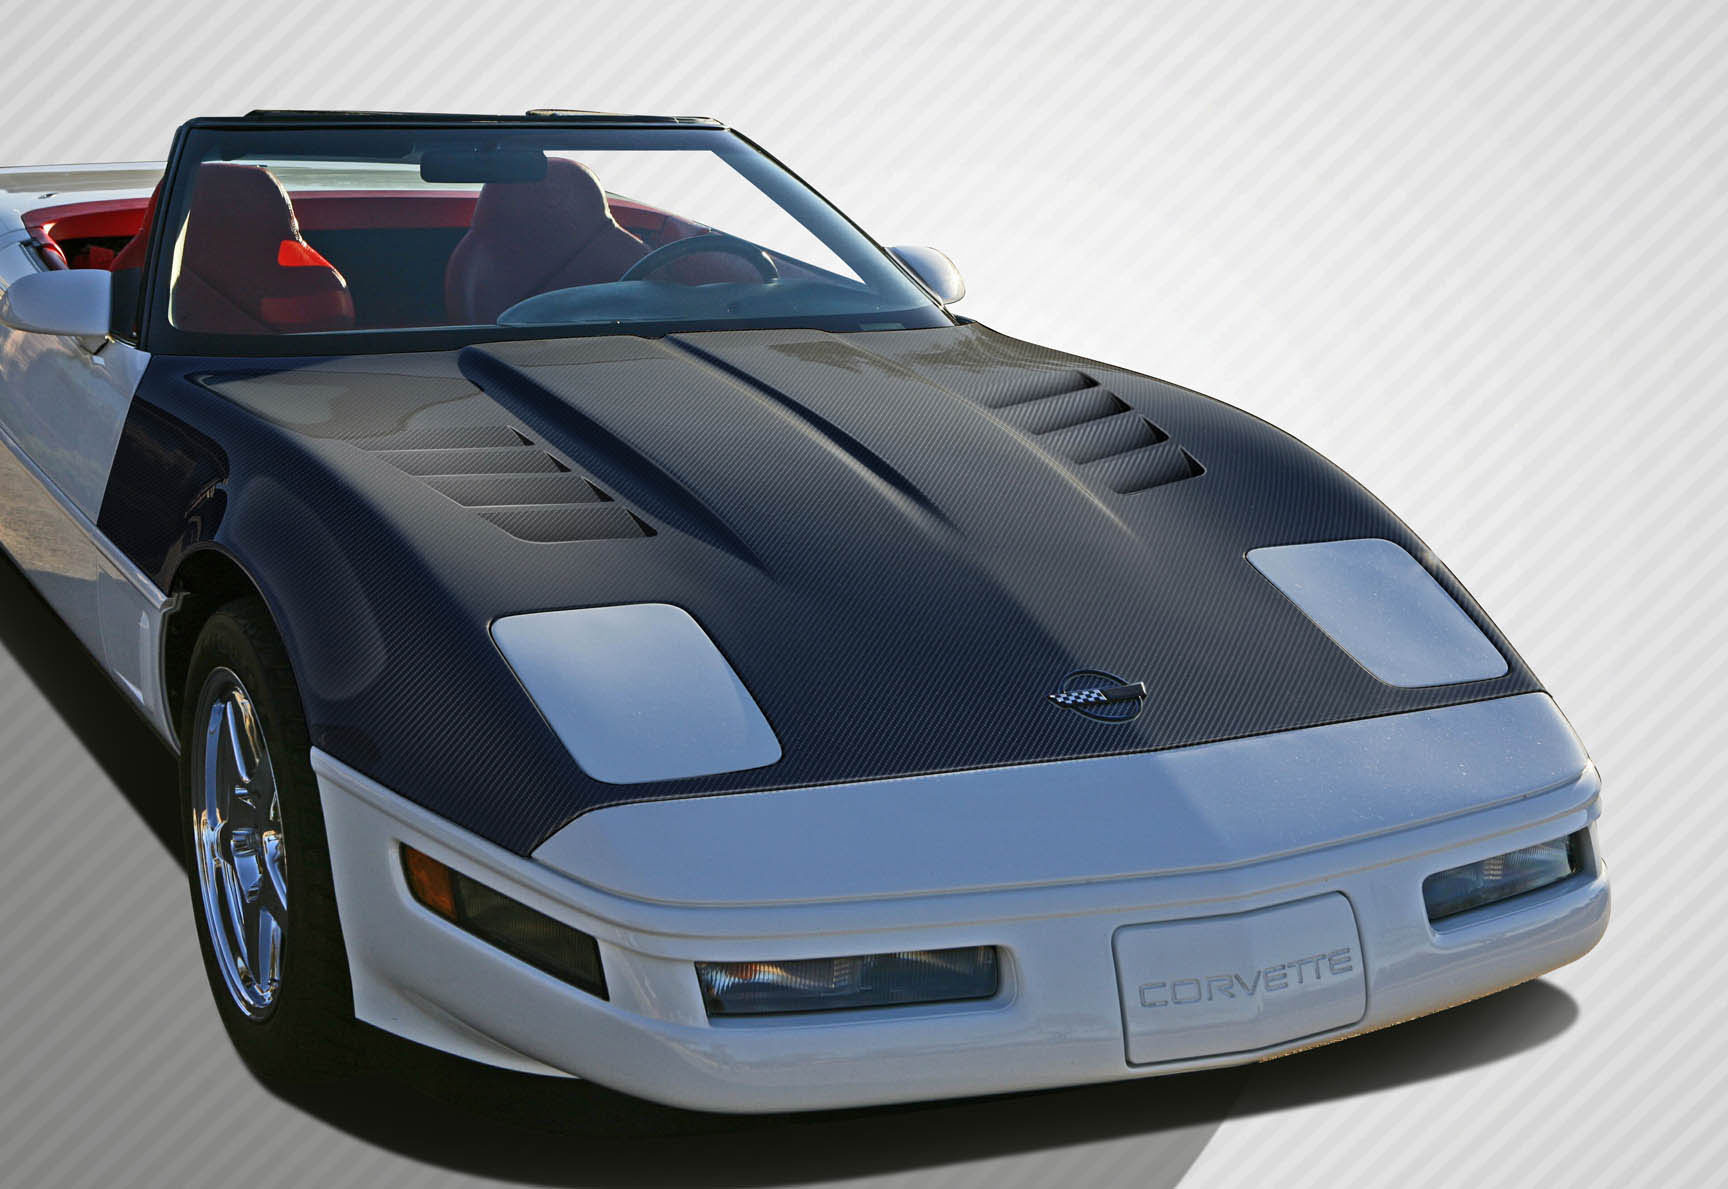 C4 Corvette Race Body